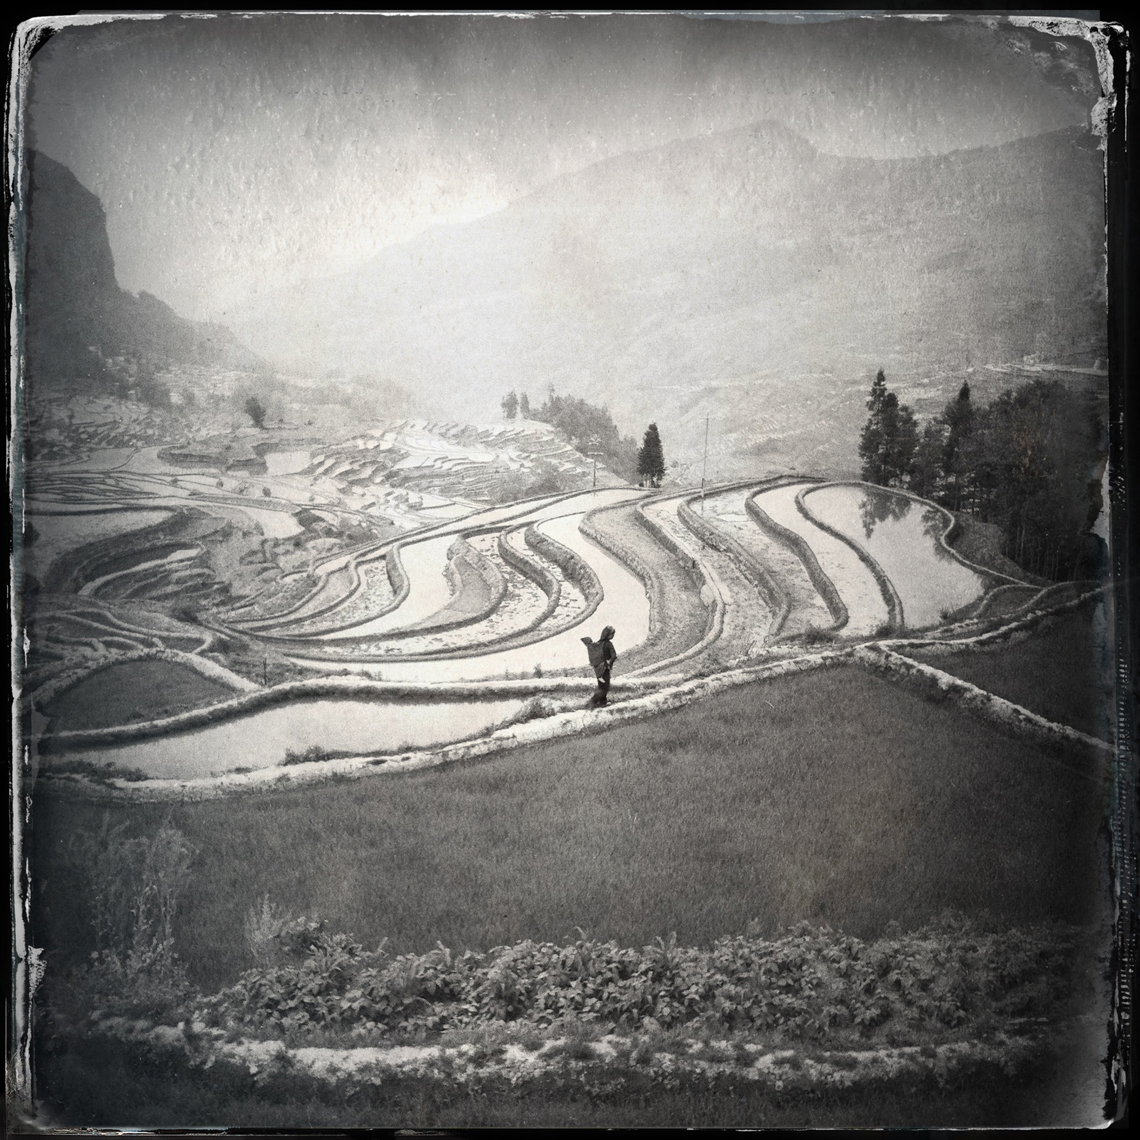 Jon Wyatt Photography - Rice paddies in Yuanyang, Yunnan, China. Hipstamatic